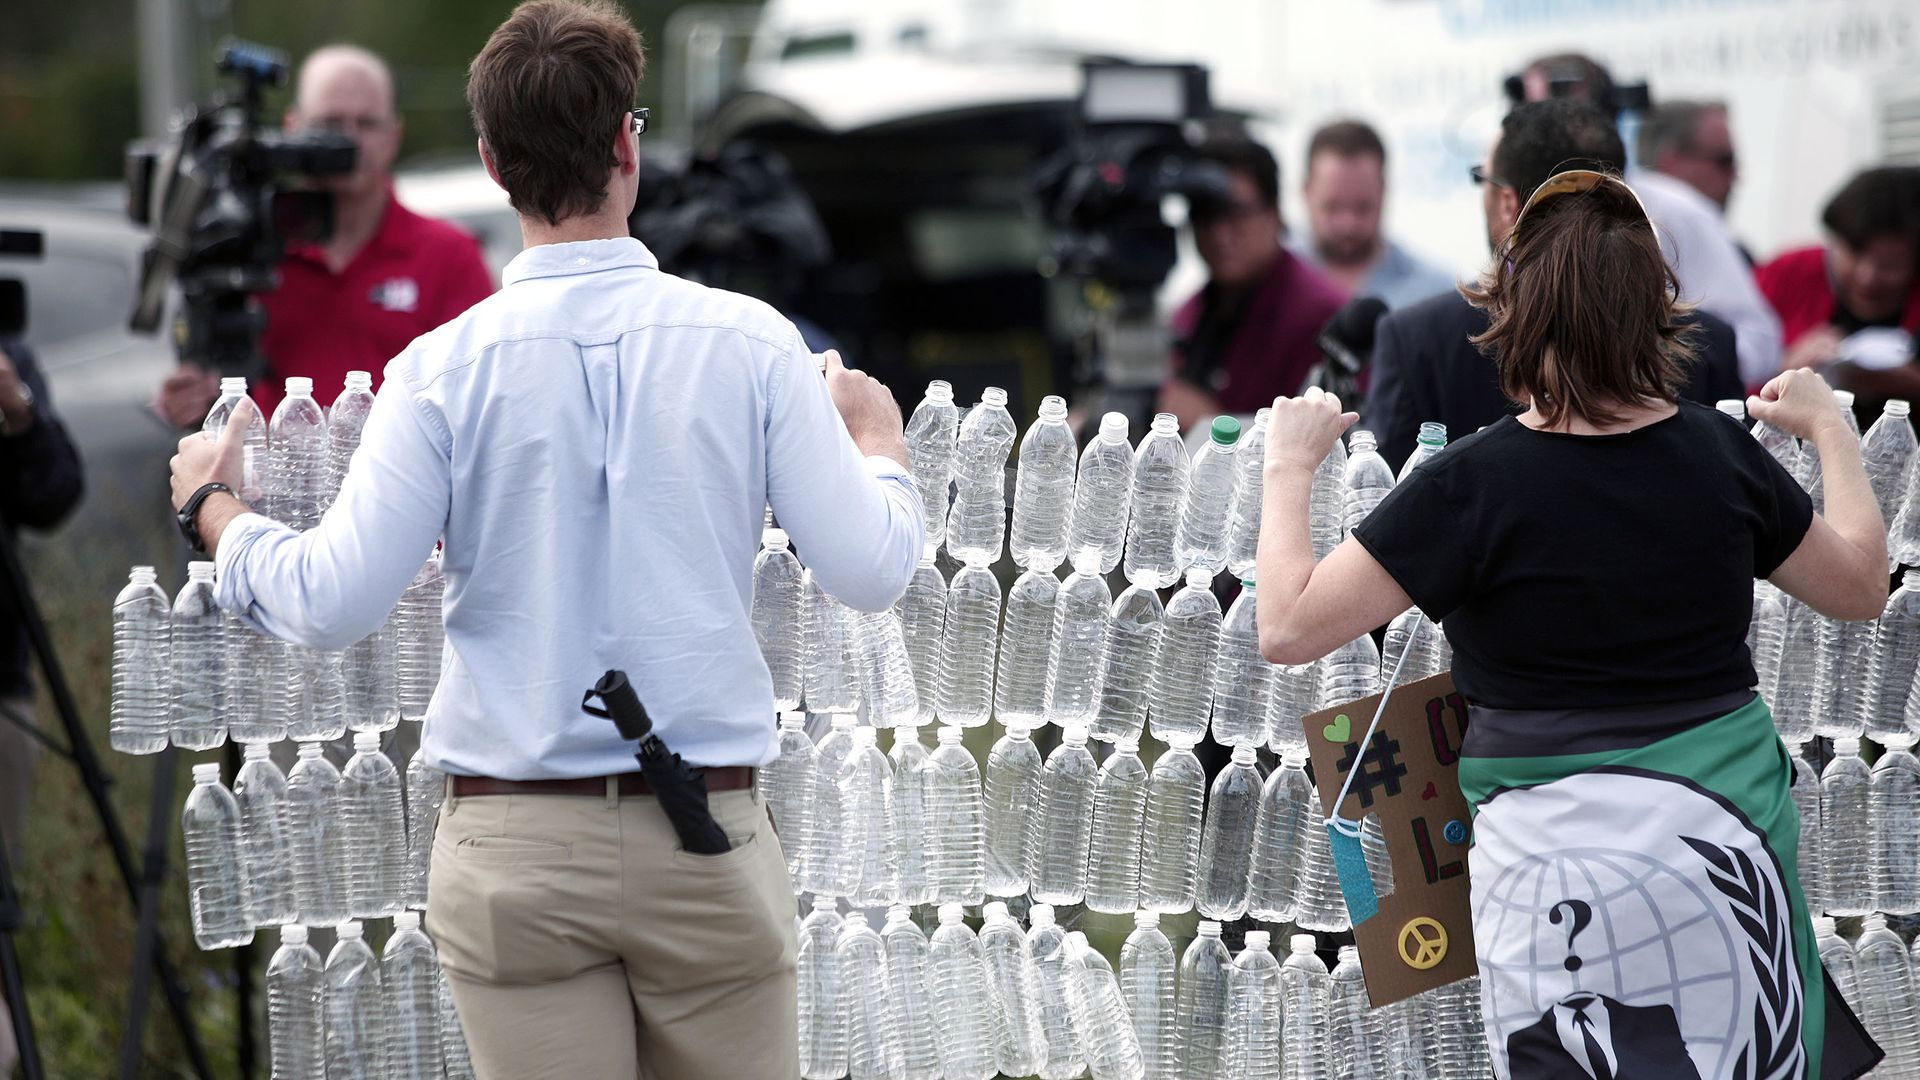 In this image, a man and a woman hold a connected chain of four rows of plastic water bottles while walking outside.